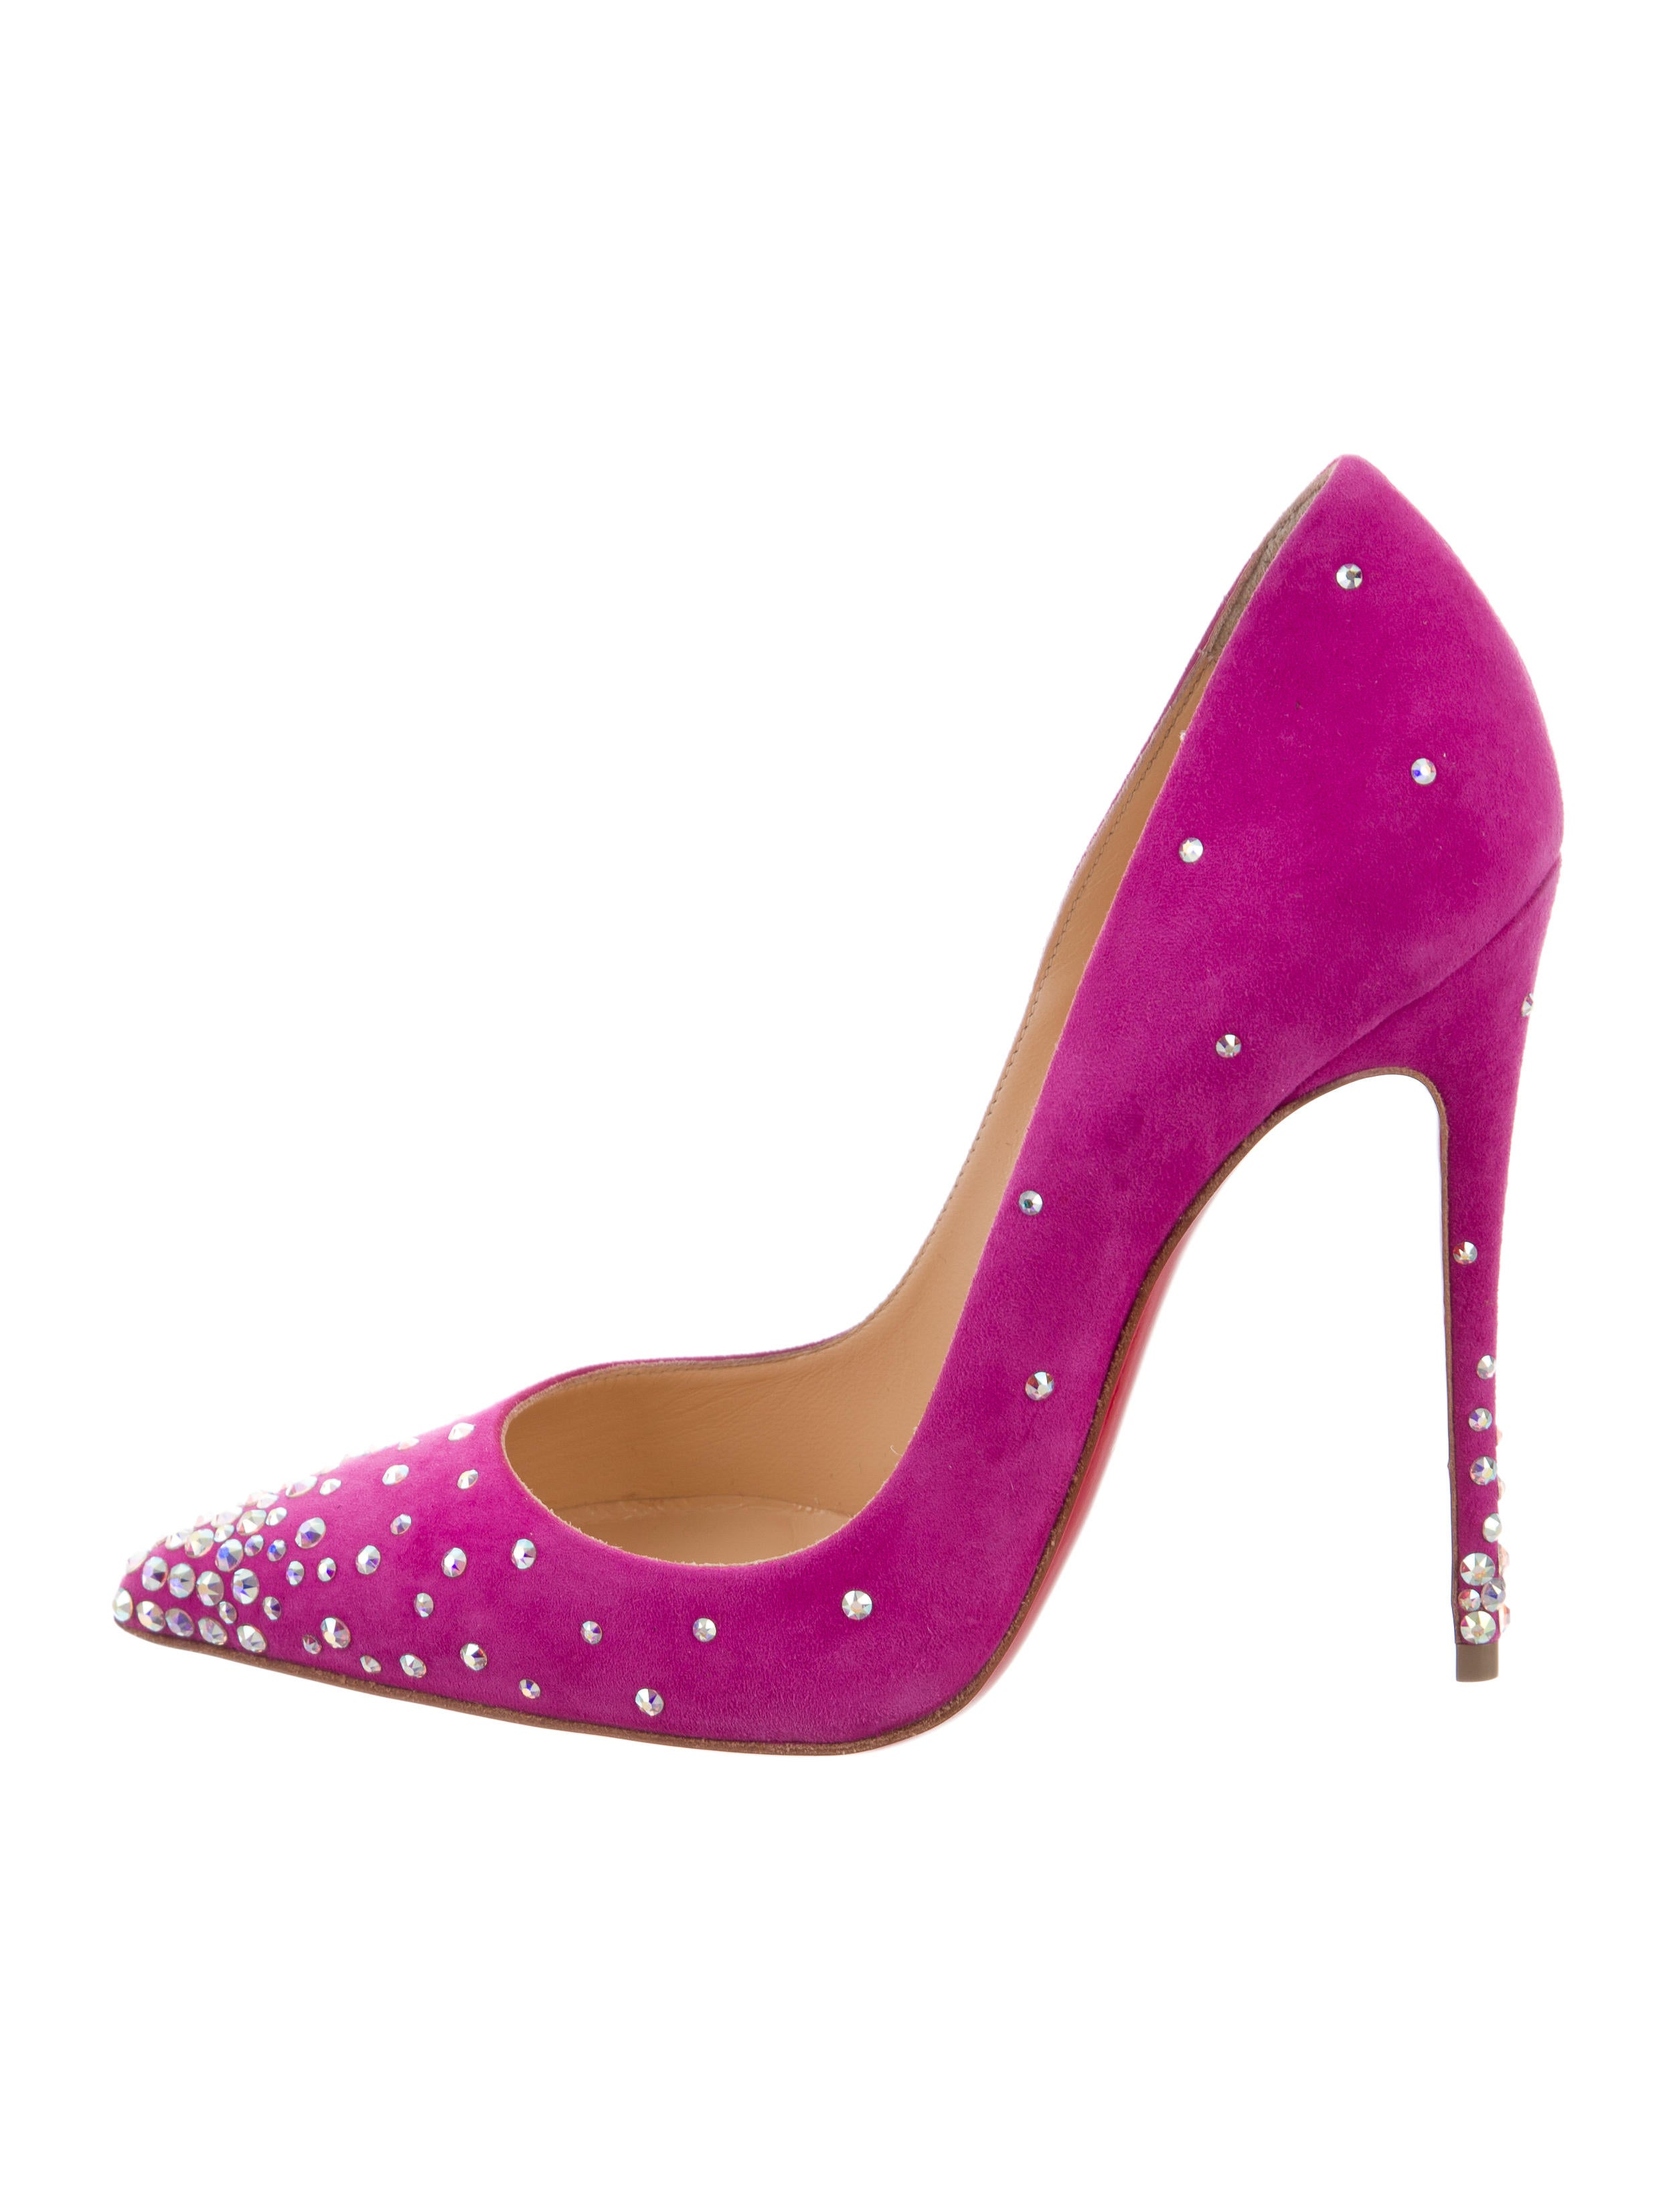 67177a19048b Christian Louboutin Degrastrass 120 Pumps w  Tags - Shoes - CHT82017 ...